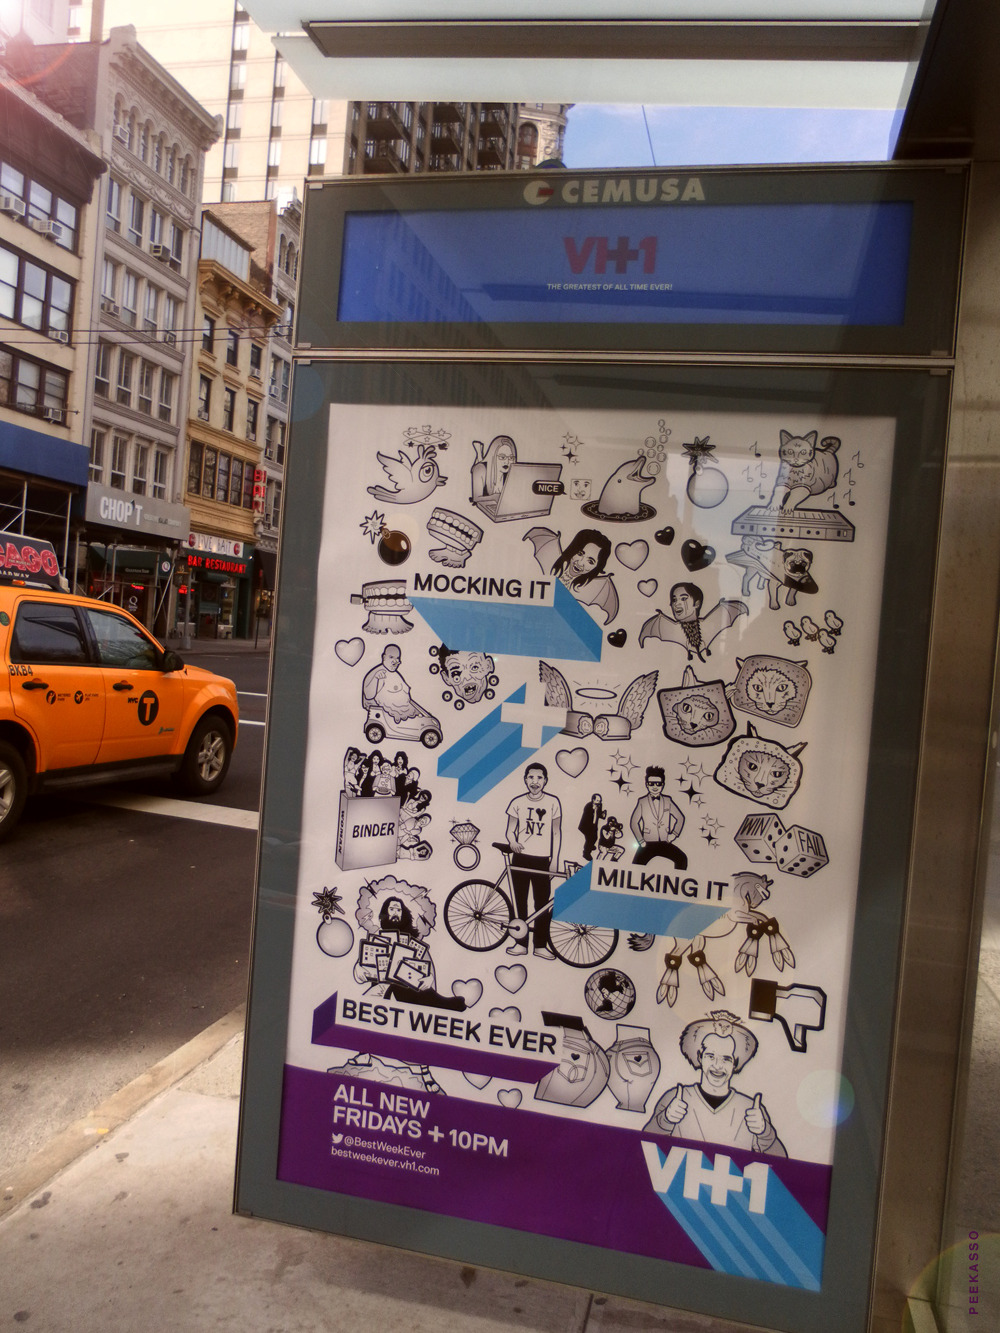 peekasso:  milking it  Have you seen any of our new ads around town? #plussed